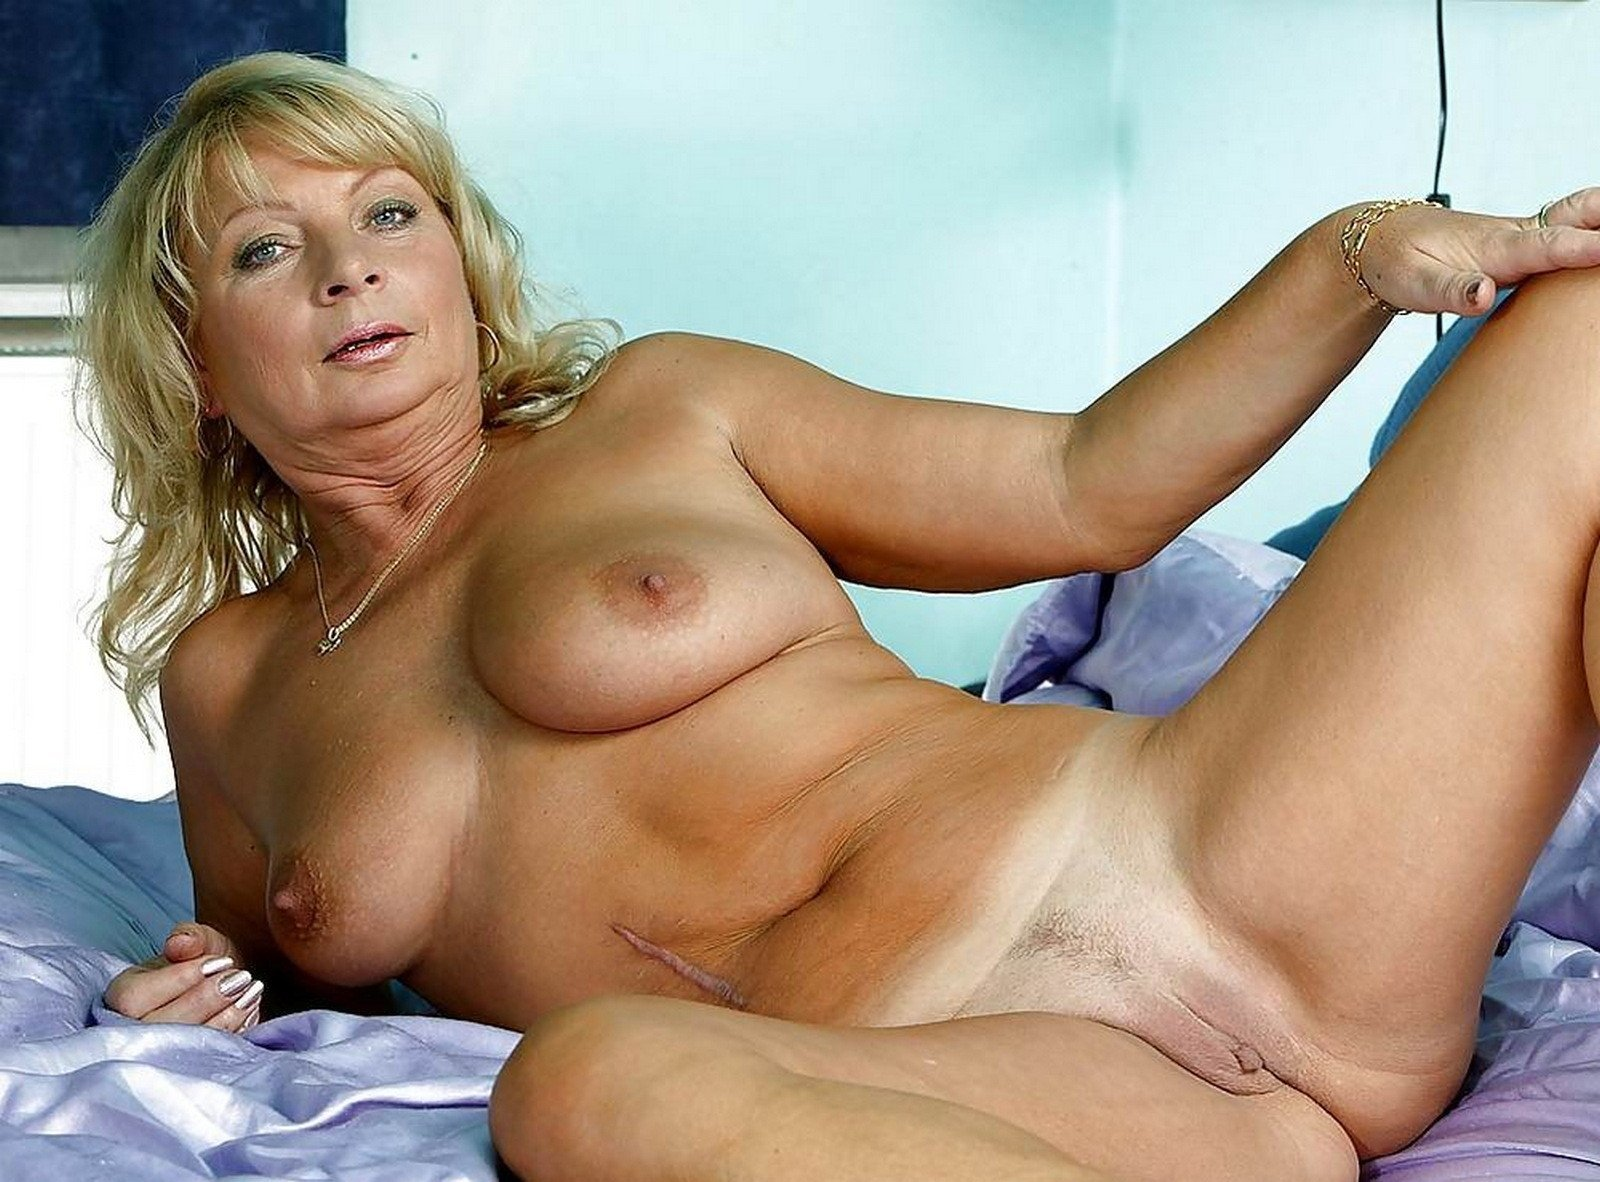 Nude mature women pictures